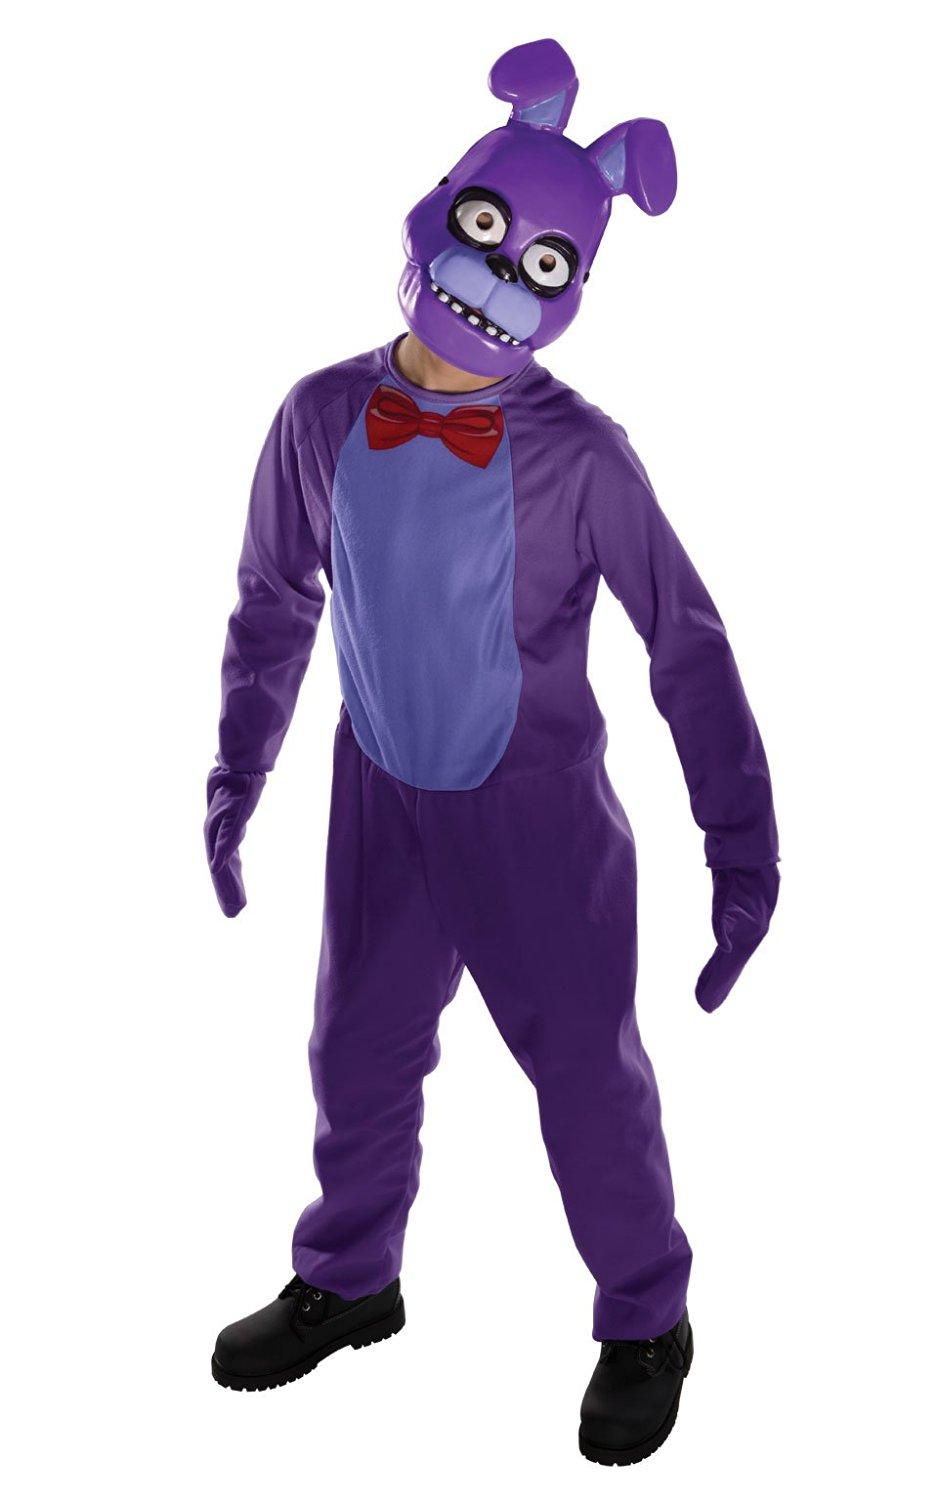 Bonnie Five nights at Freddy's costume 630100